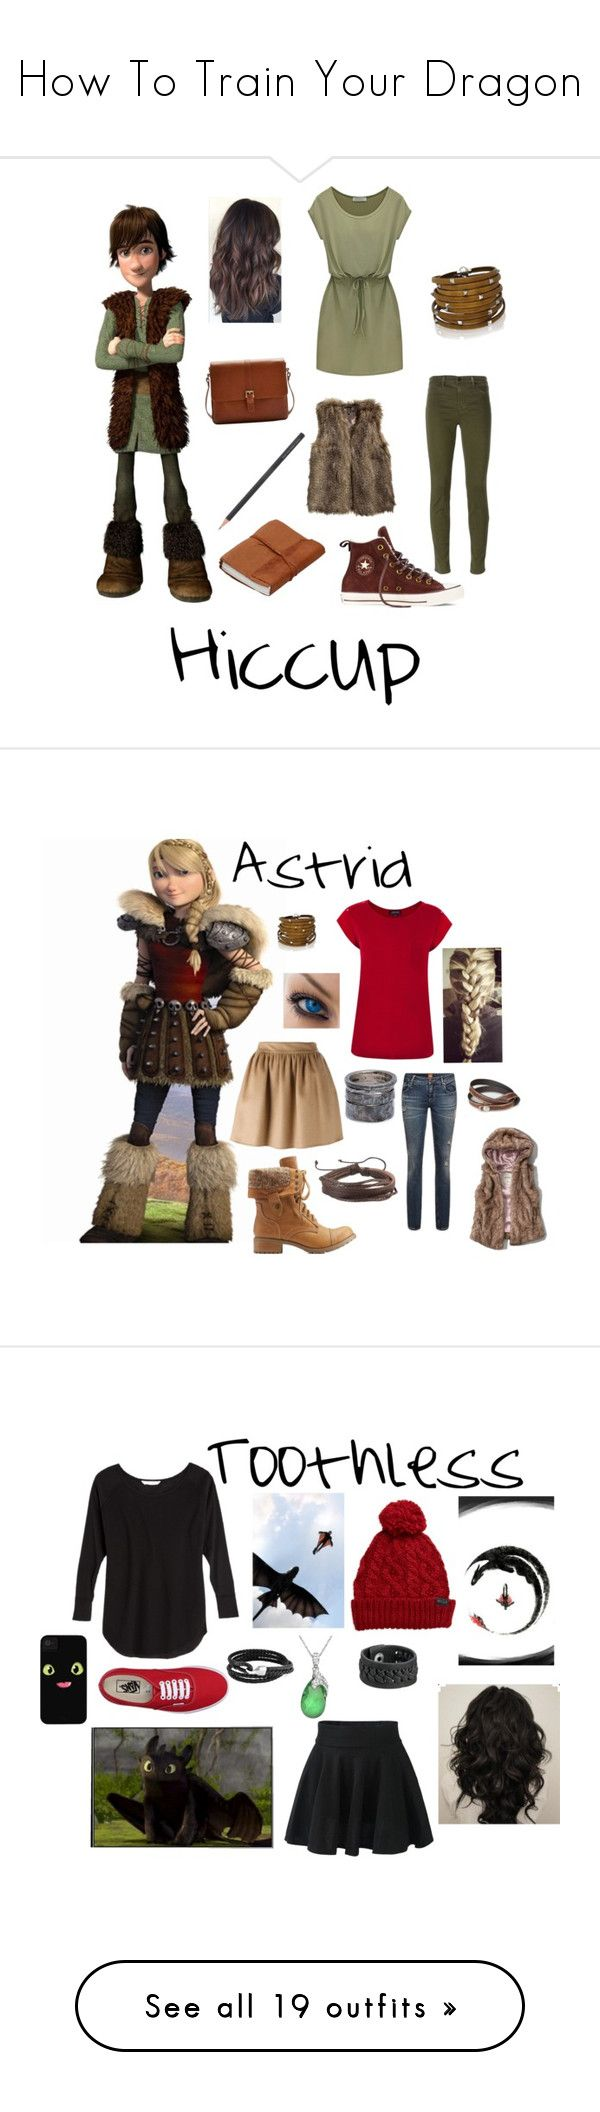 """""""How To Train Your Dragon"""" by pandapoptart15 ❤ liked on Polyvore featuring Sif Jakobs Jewellery, J Brand, Converse, H&M, Joules, Faber-Castell, Dsquared2, Warehouse, NOVICA and Abercrombie & Fitch"""